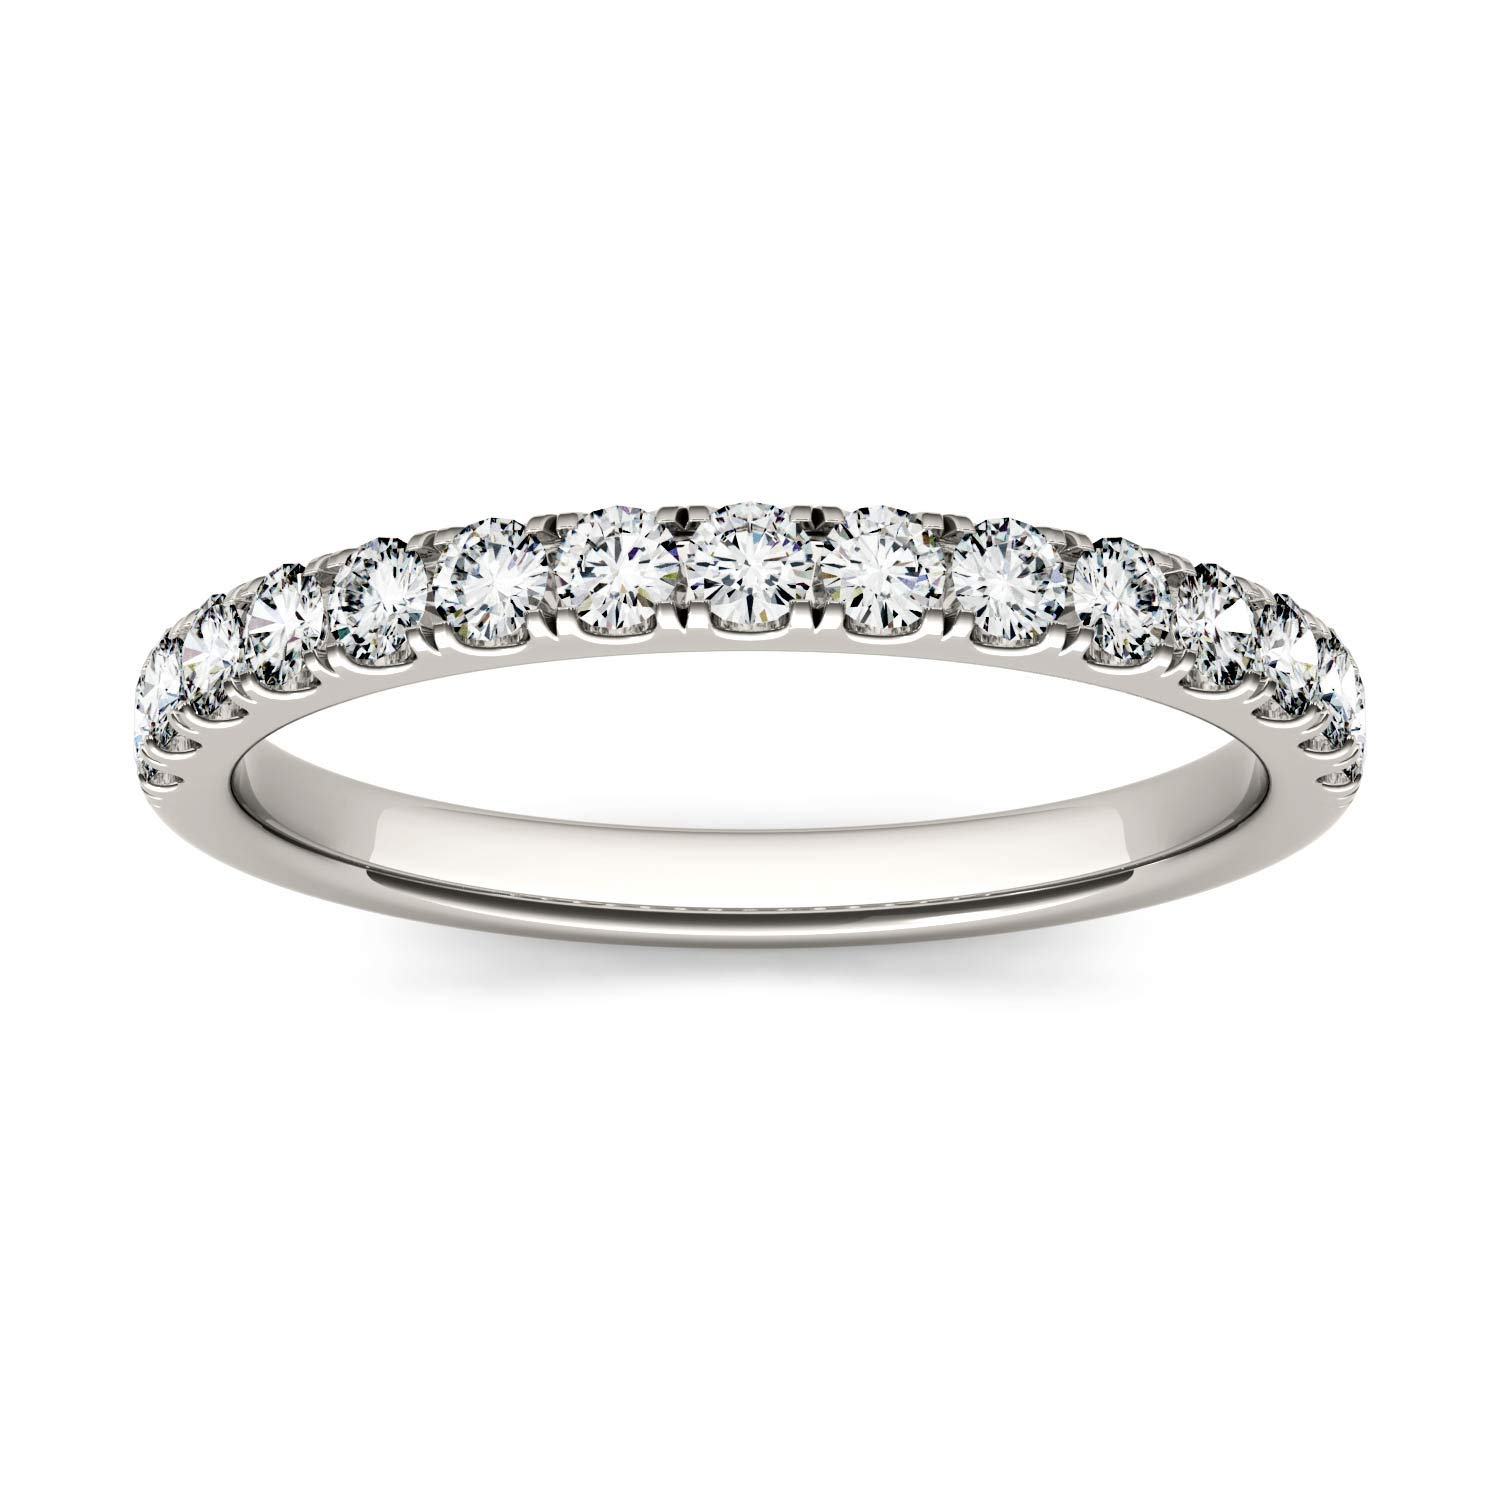 14K White Gold Moissanite by Charles & Colvard 2mm Round Wedding Band-size 6, 0.45cttw DEW by Charles & Colvard